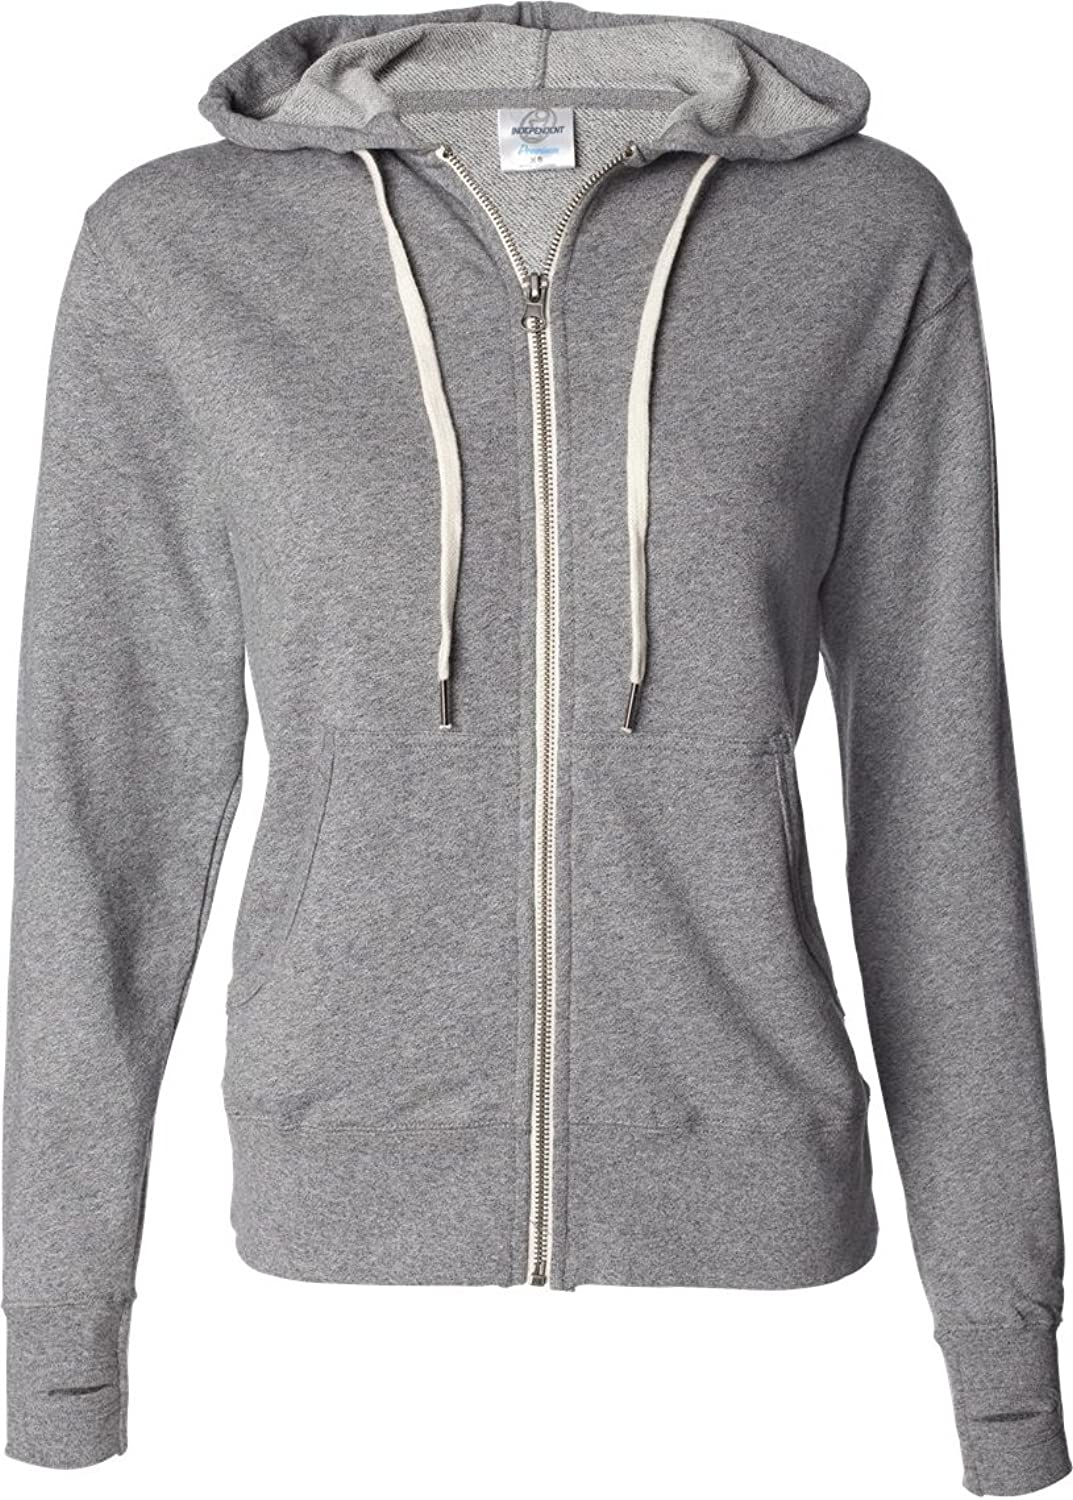 Independent Trading Co Mens French Terry Full Zip Hooded Sweatshirt. PRM90HTZ Medium Salt and Pepper